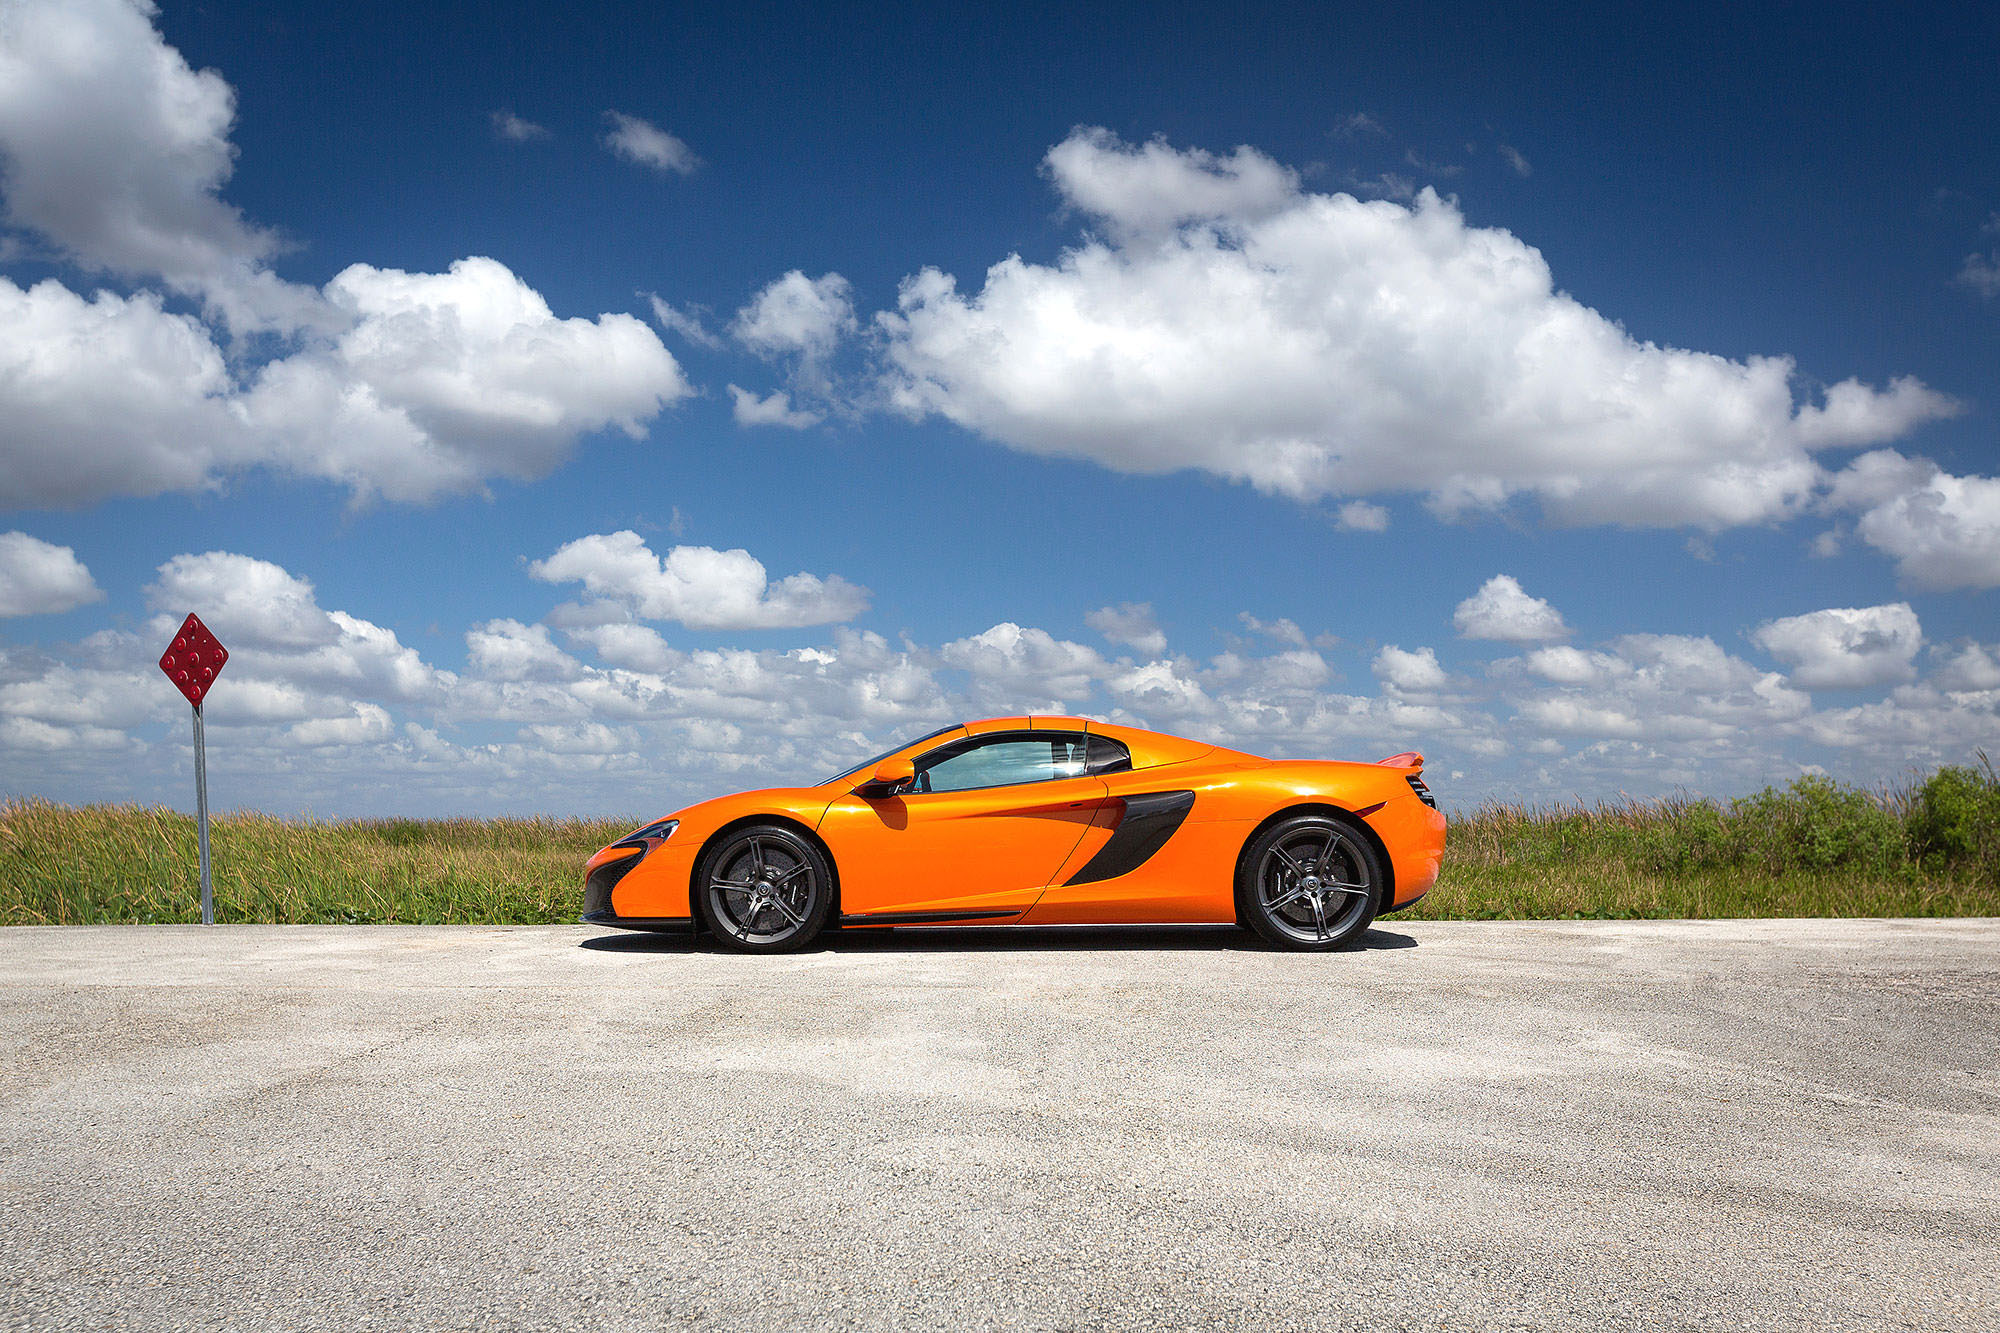 McLaren 650S Spider profile shot on Everglades Parkway